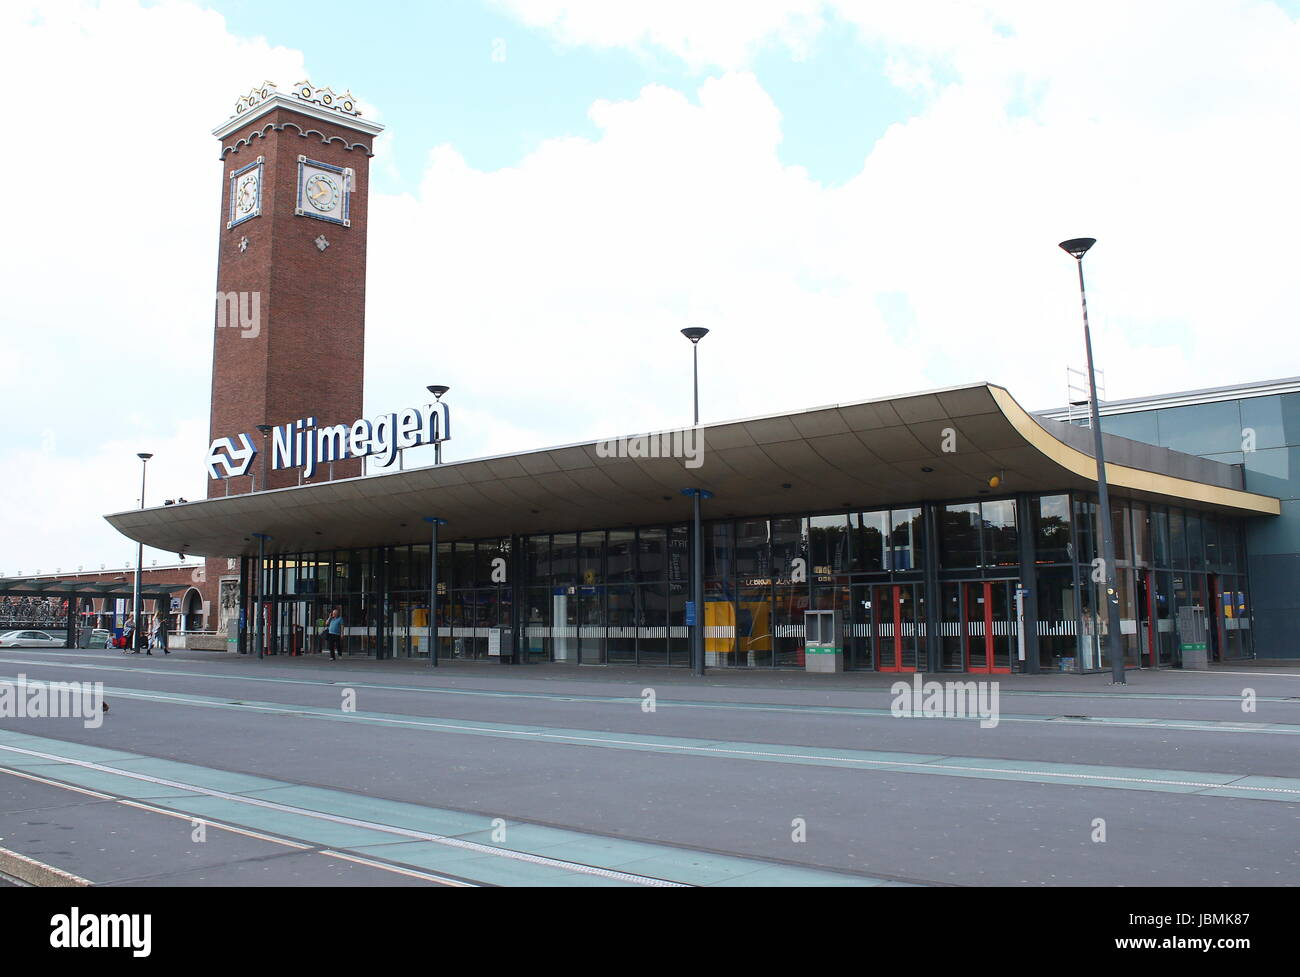 Main Railway Station in Nijmegen, Gelderland, Netherlands, designed by Dutch architect Sybold van Ravesteyn in 1954. - Stock Image